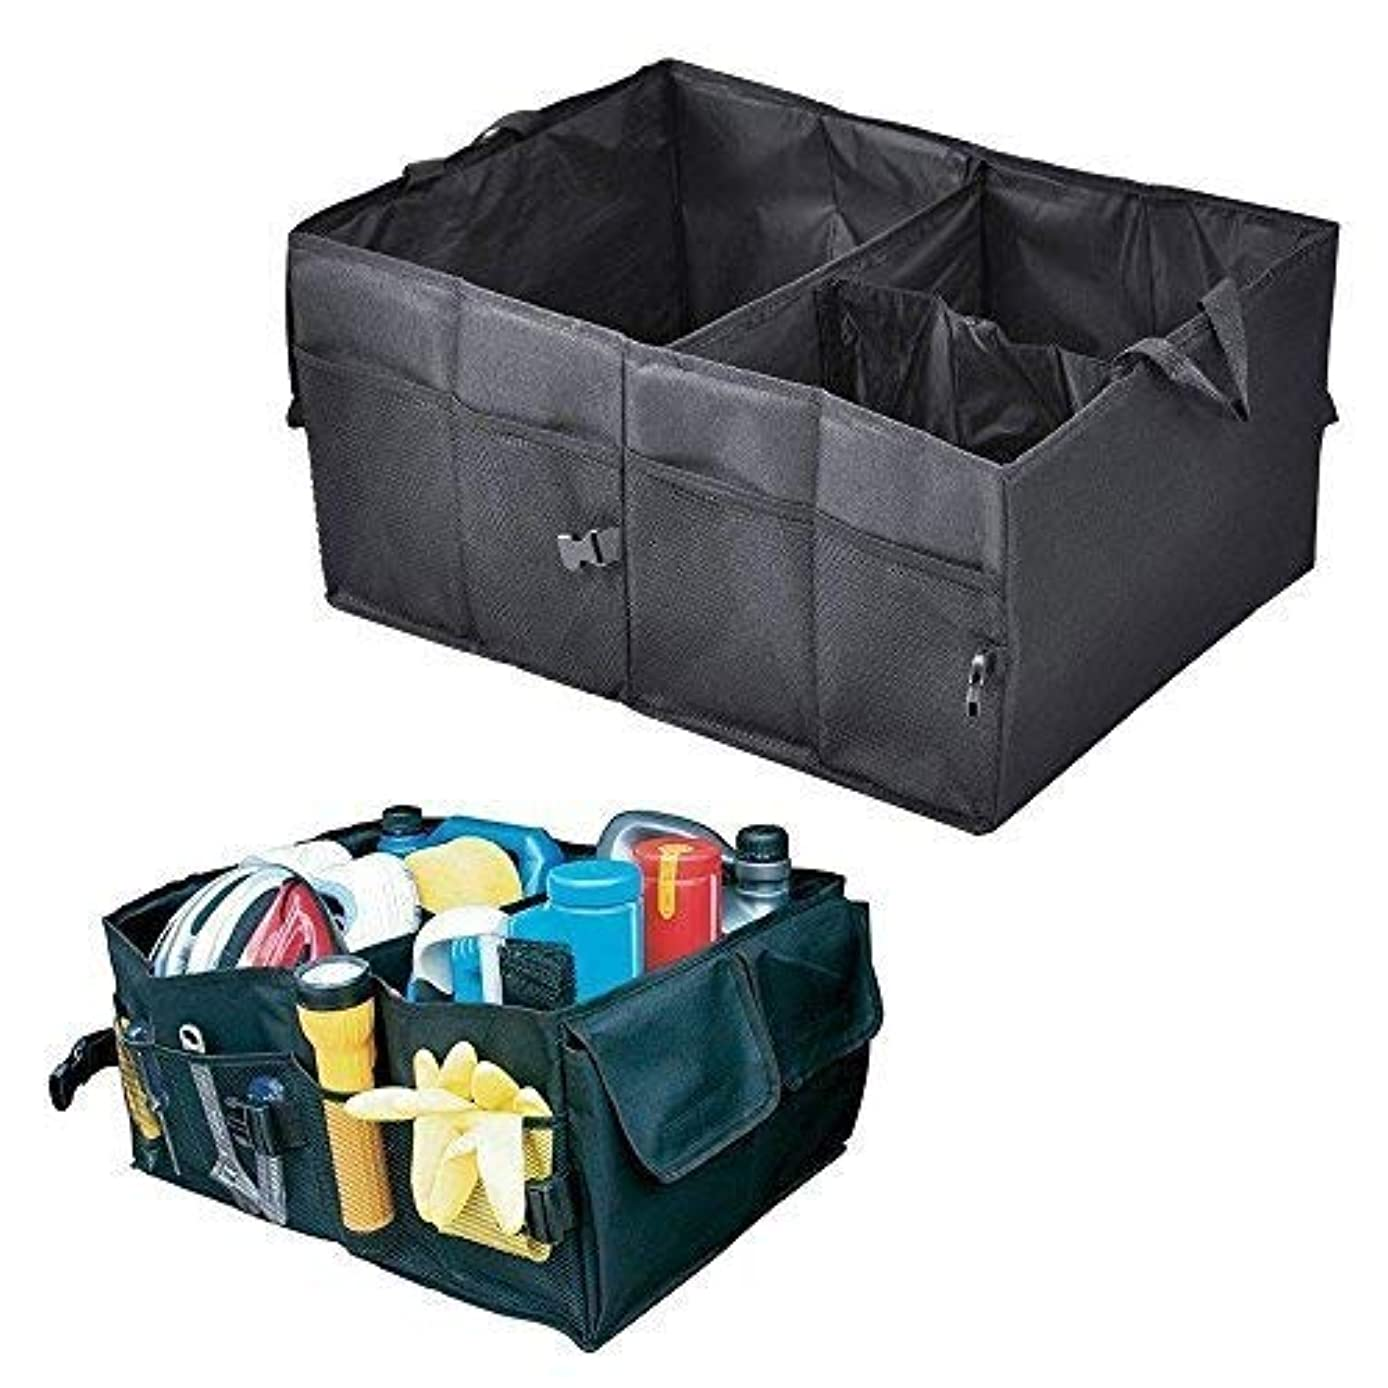 Trunk Organizers Car Boot Tidy Boot Organiser Compartment Foldable Car Tidy Boot Storage Trunk Van Tidy Organiser/Car Boot Bag Storage Pockets Organizer Bags Organisers Car Accessories Boot Storage